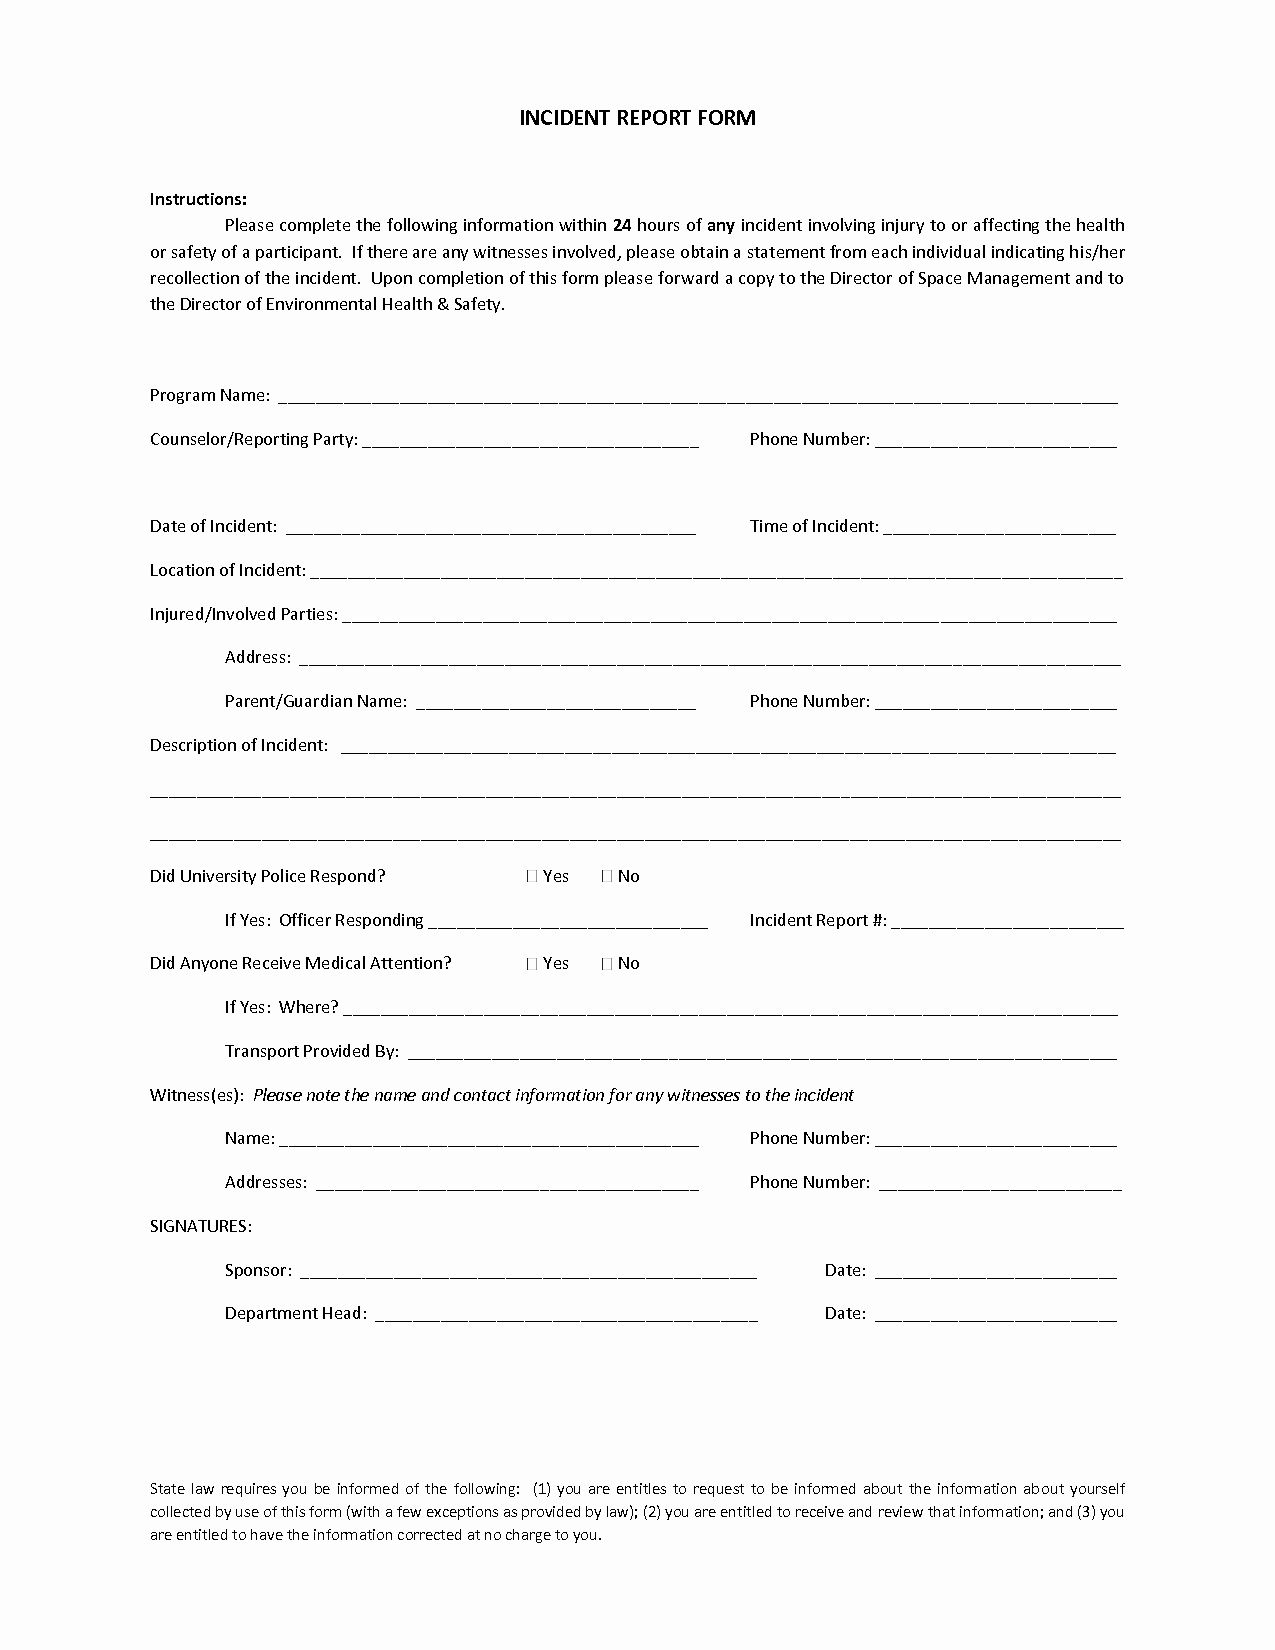 Blank Incident Report Form In